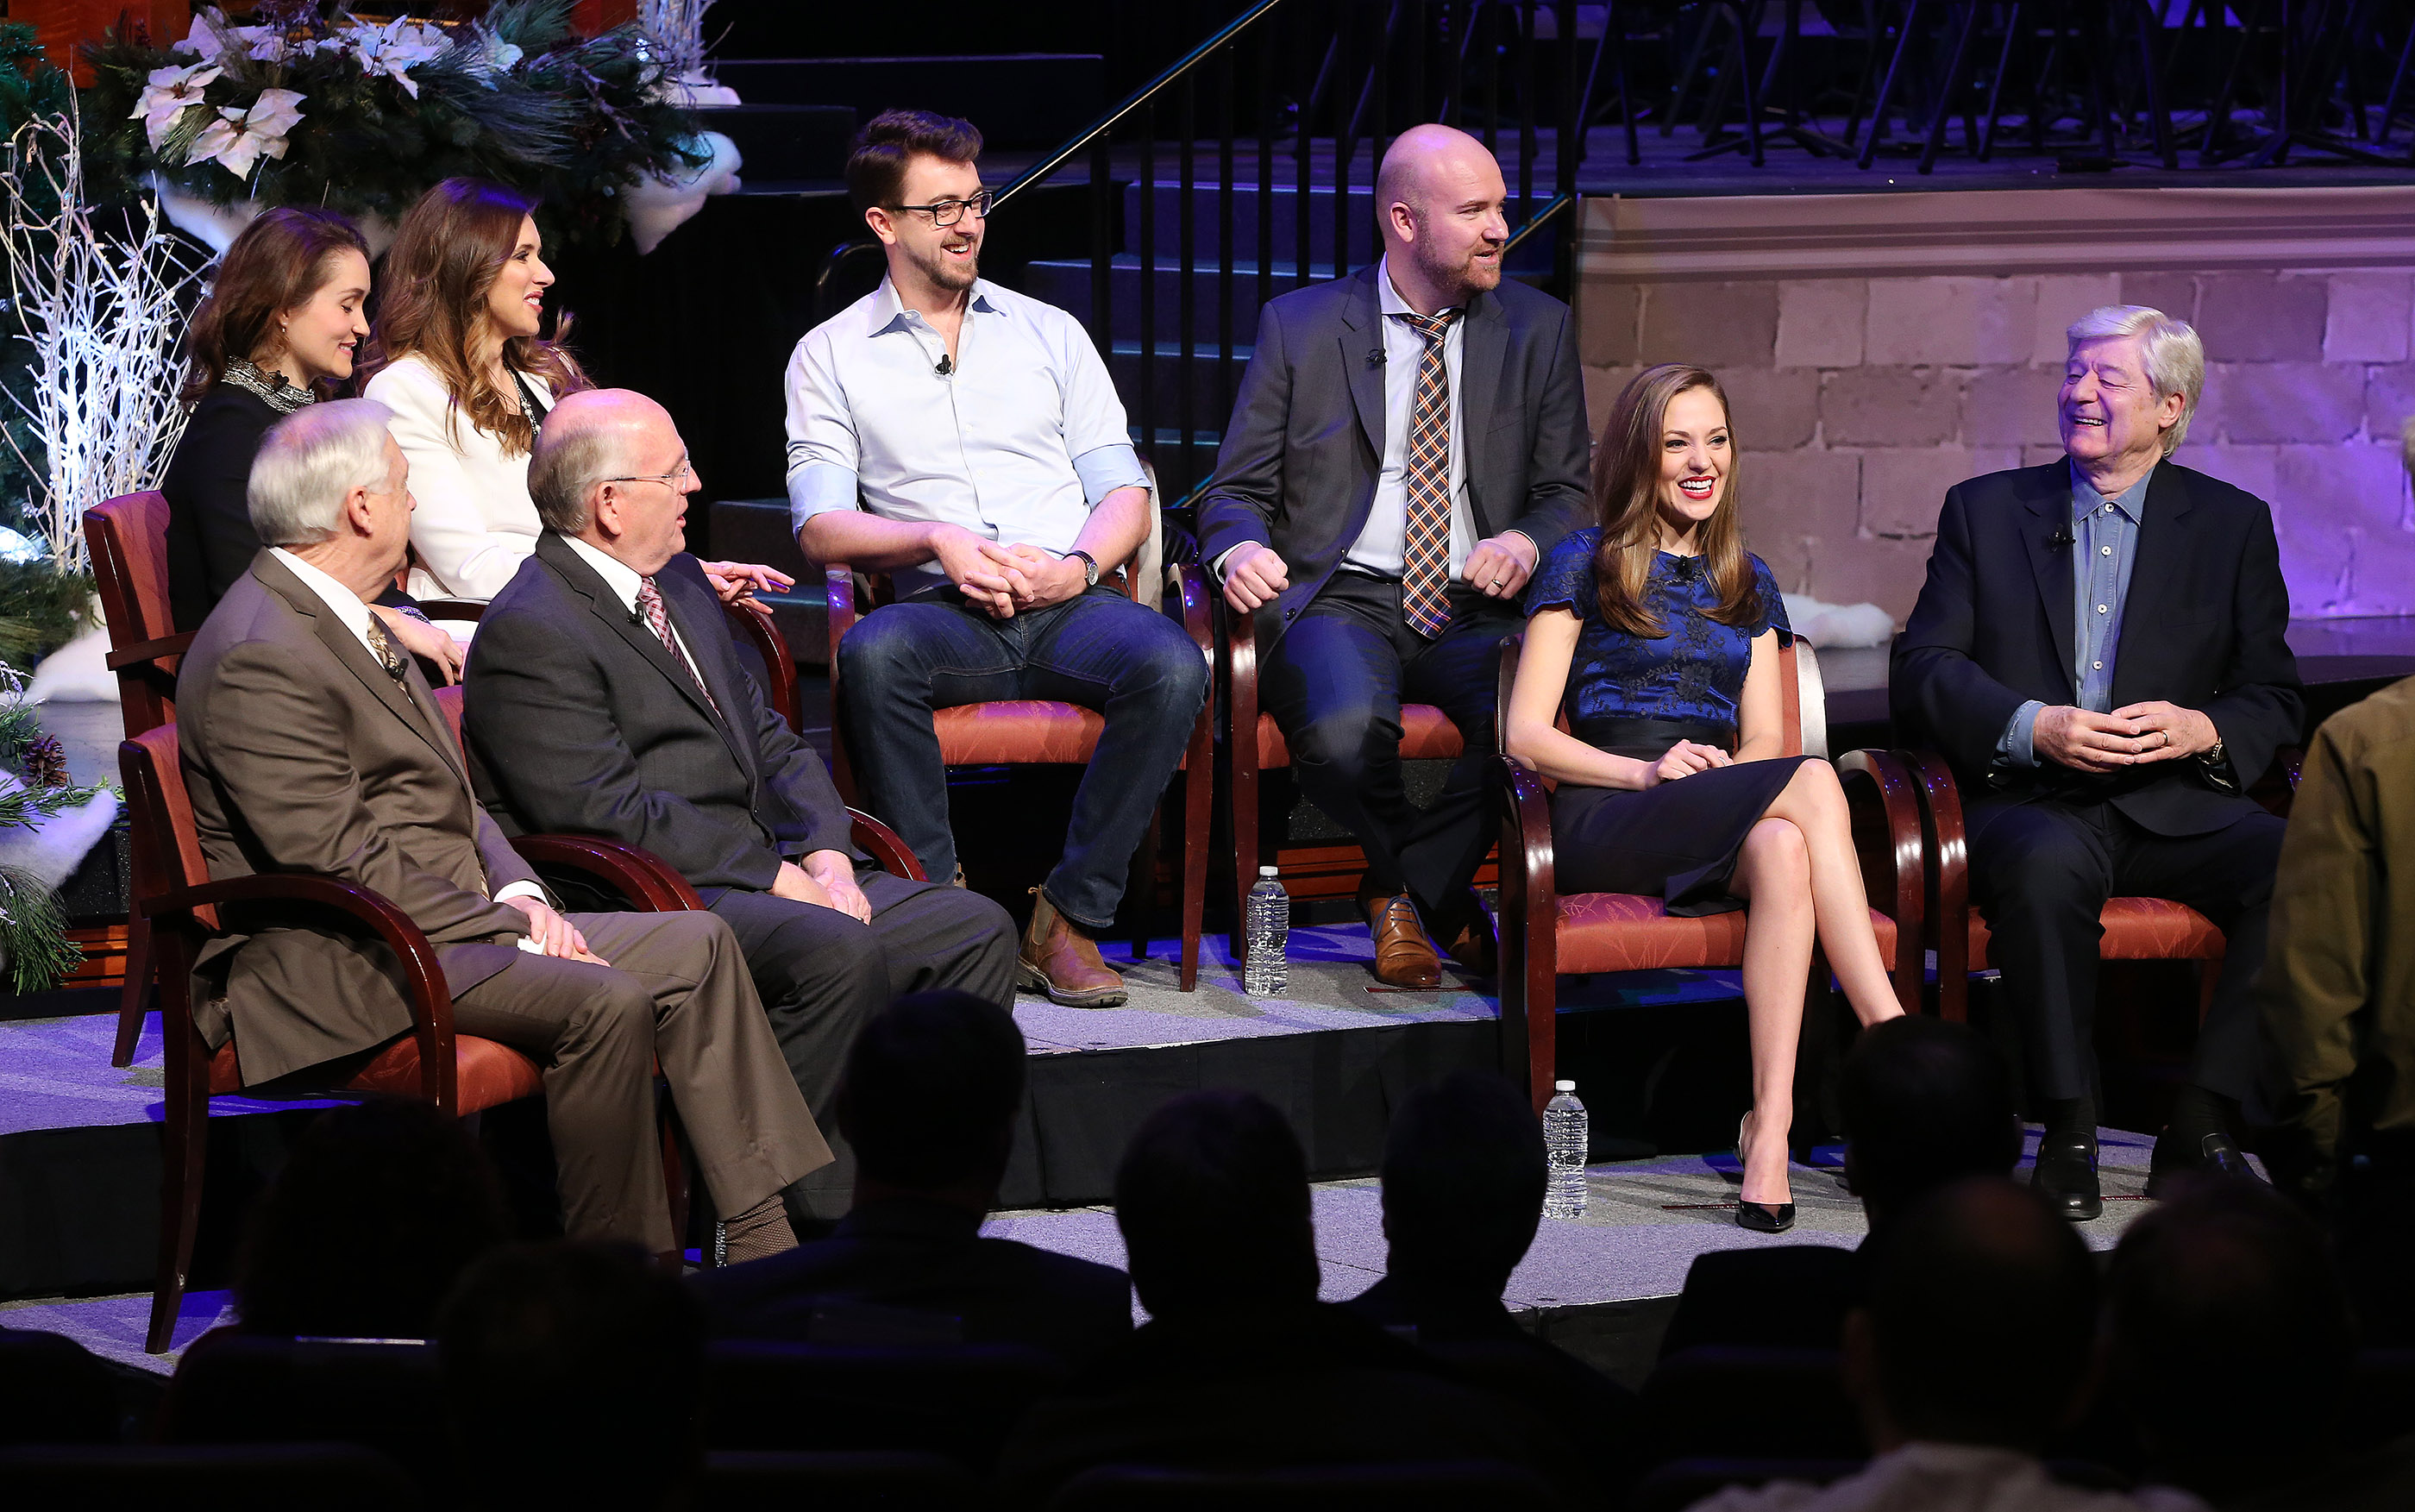 Tabernacle Choir, Orchestra Concert Features Laura Osnes